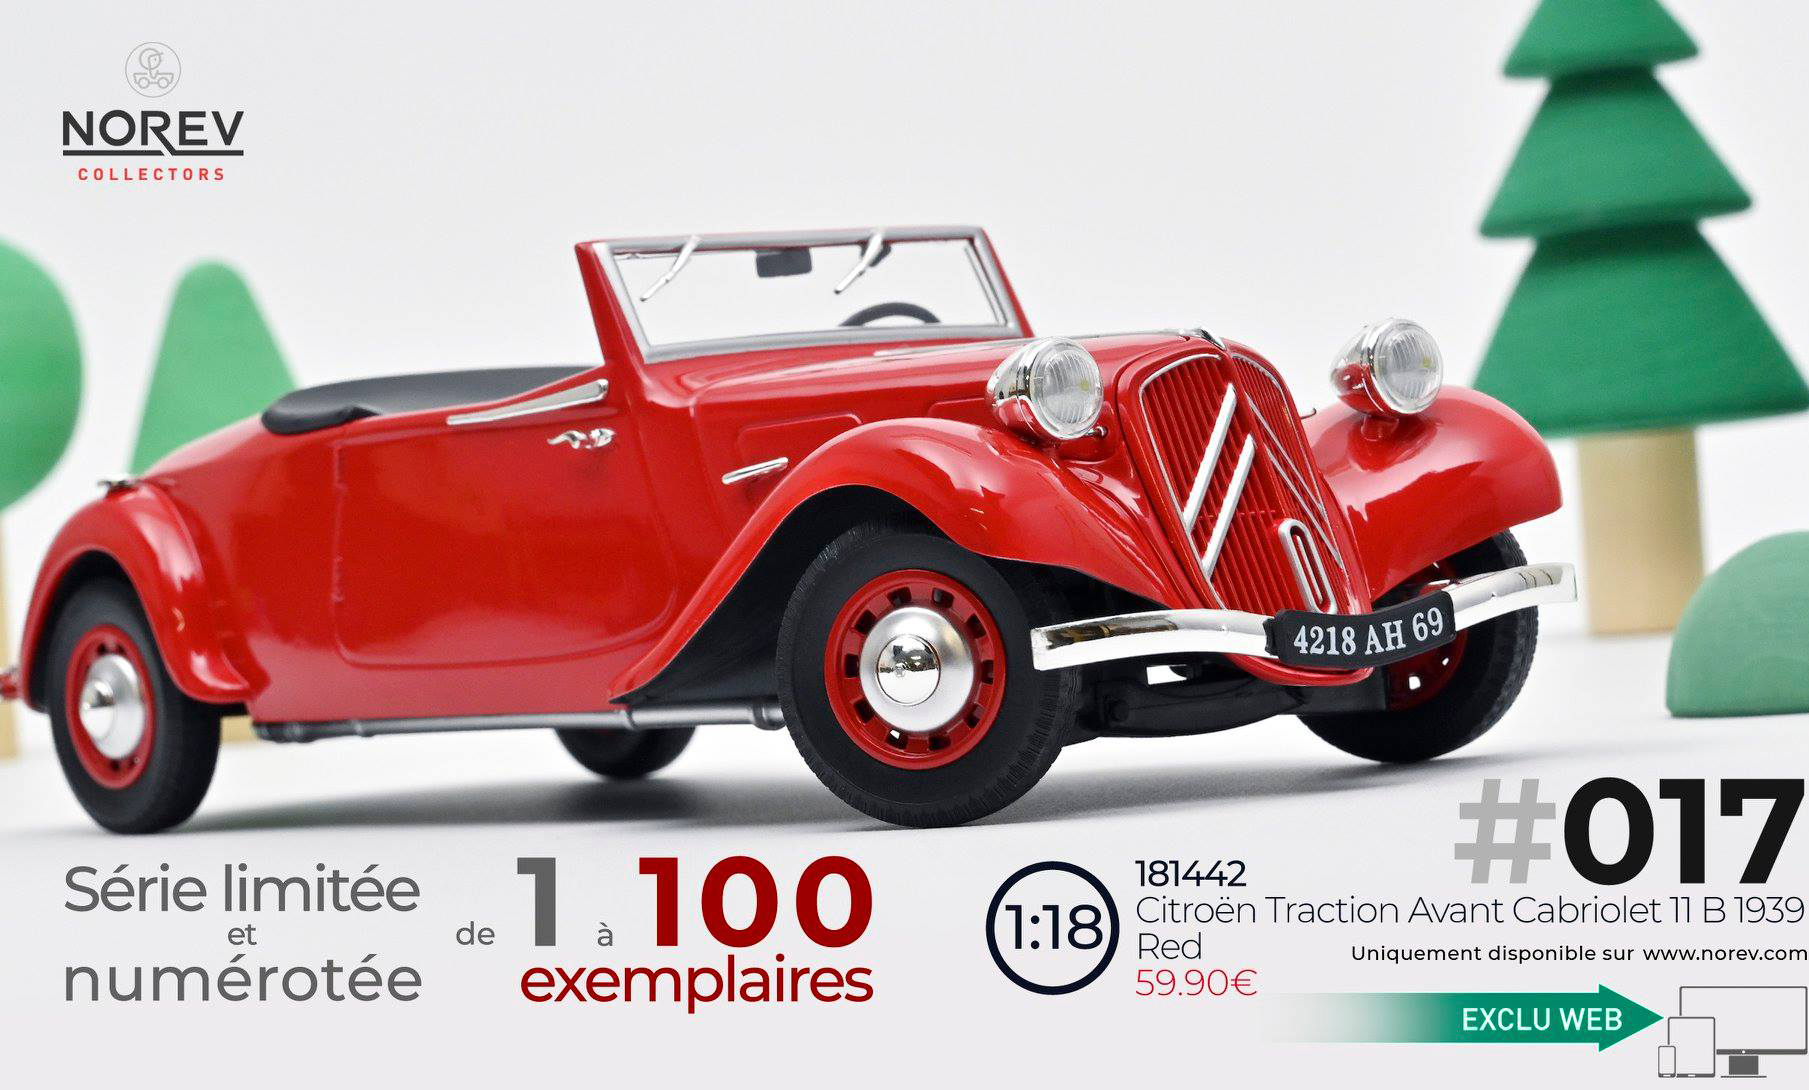 citroen-traction-avant-11b-norev-181442